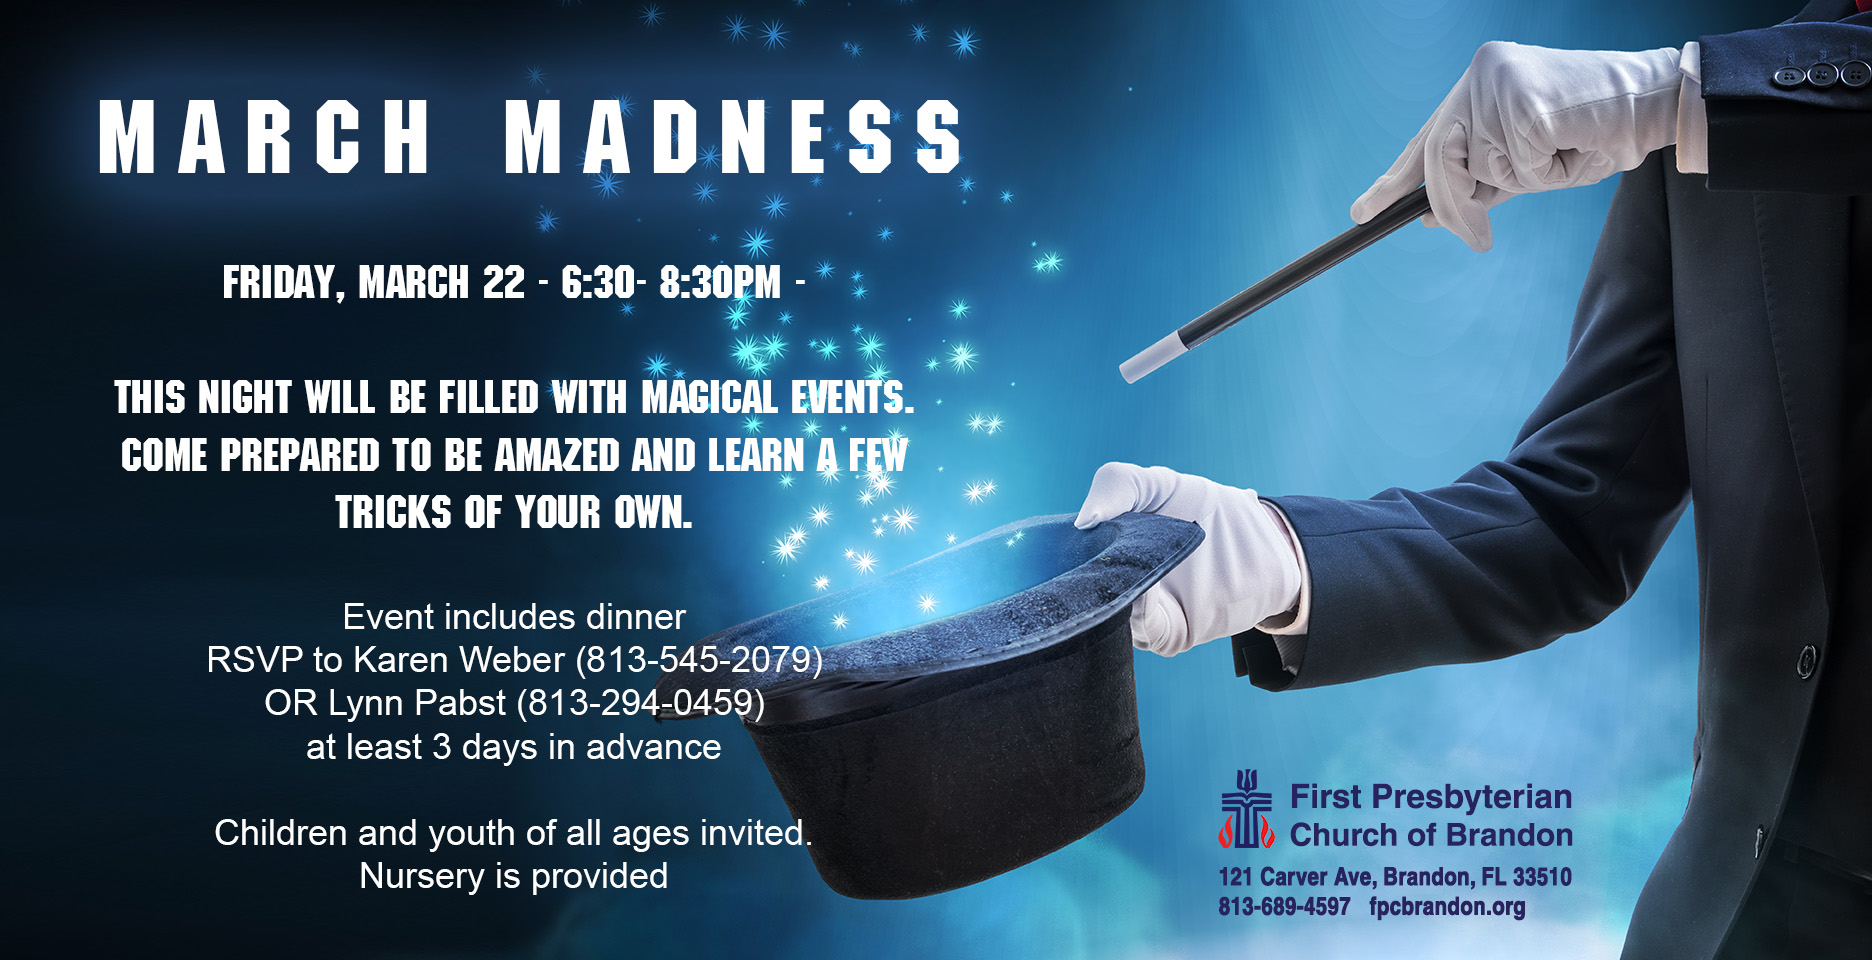 Magician, Magic Show, Free Event, Event for kids